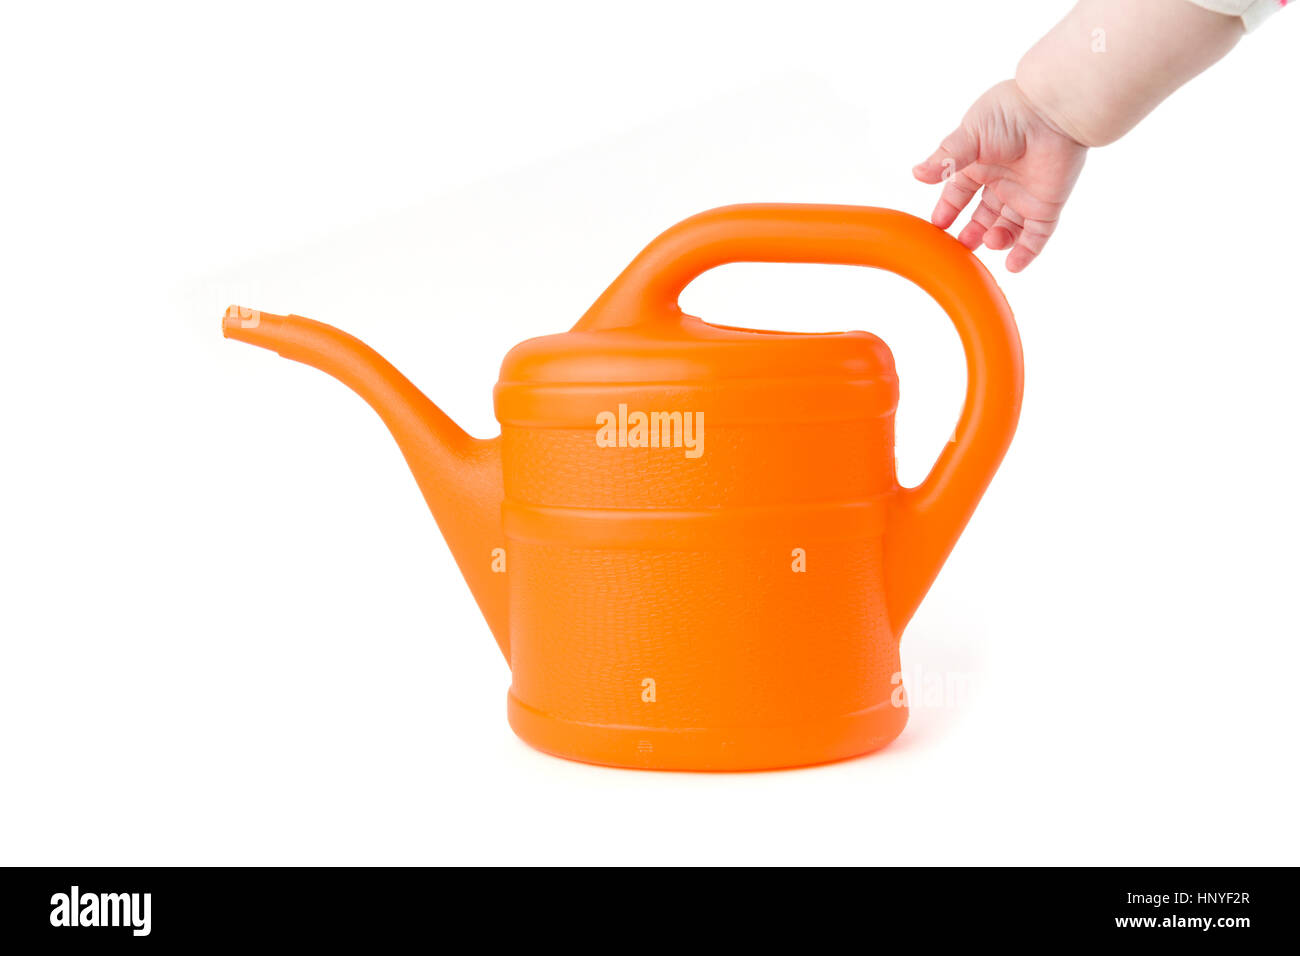 Baby trying to grab orange watering can on white background studio shot - Stock Image